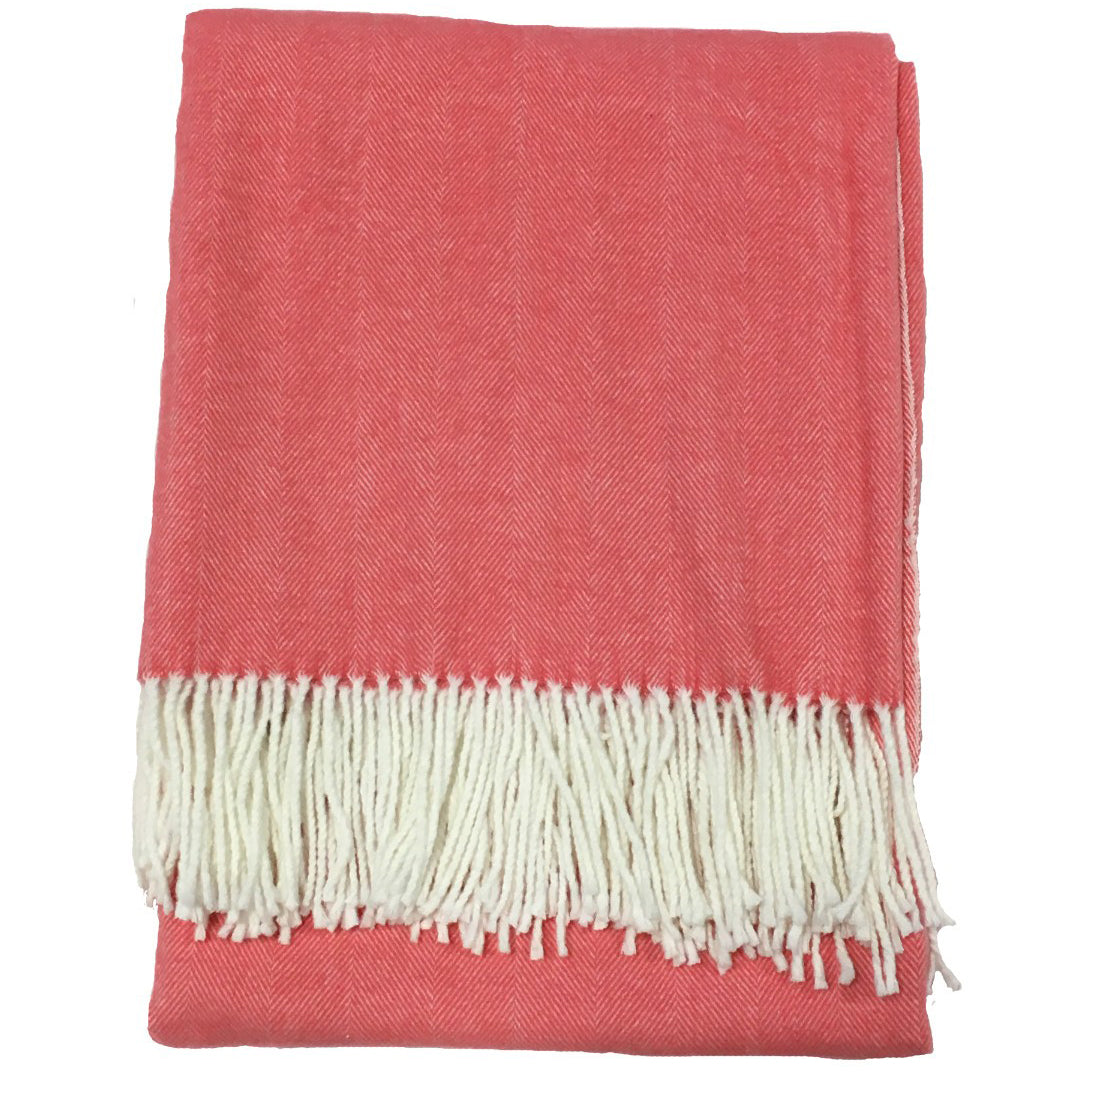 Alashan Cotton / Acrylic Adirondack Herringbone Throw - Coral Cay